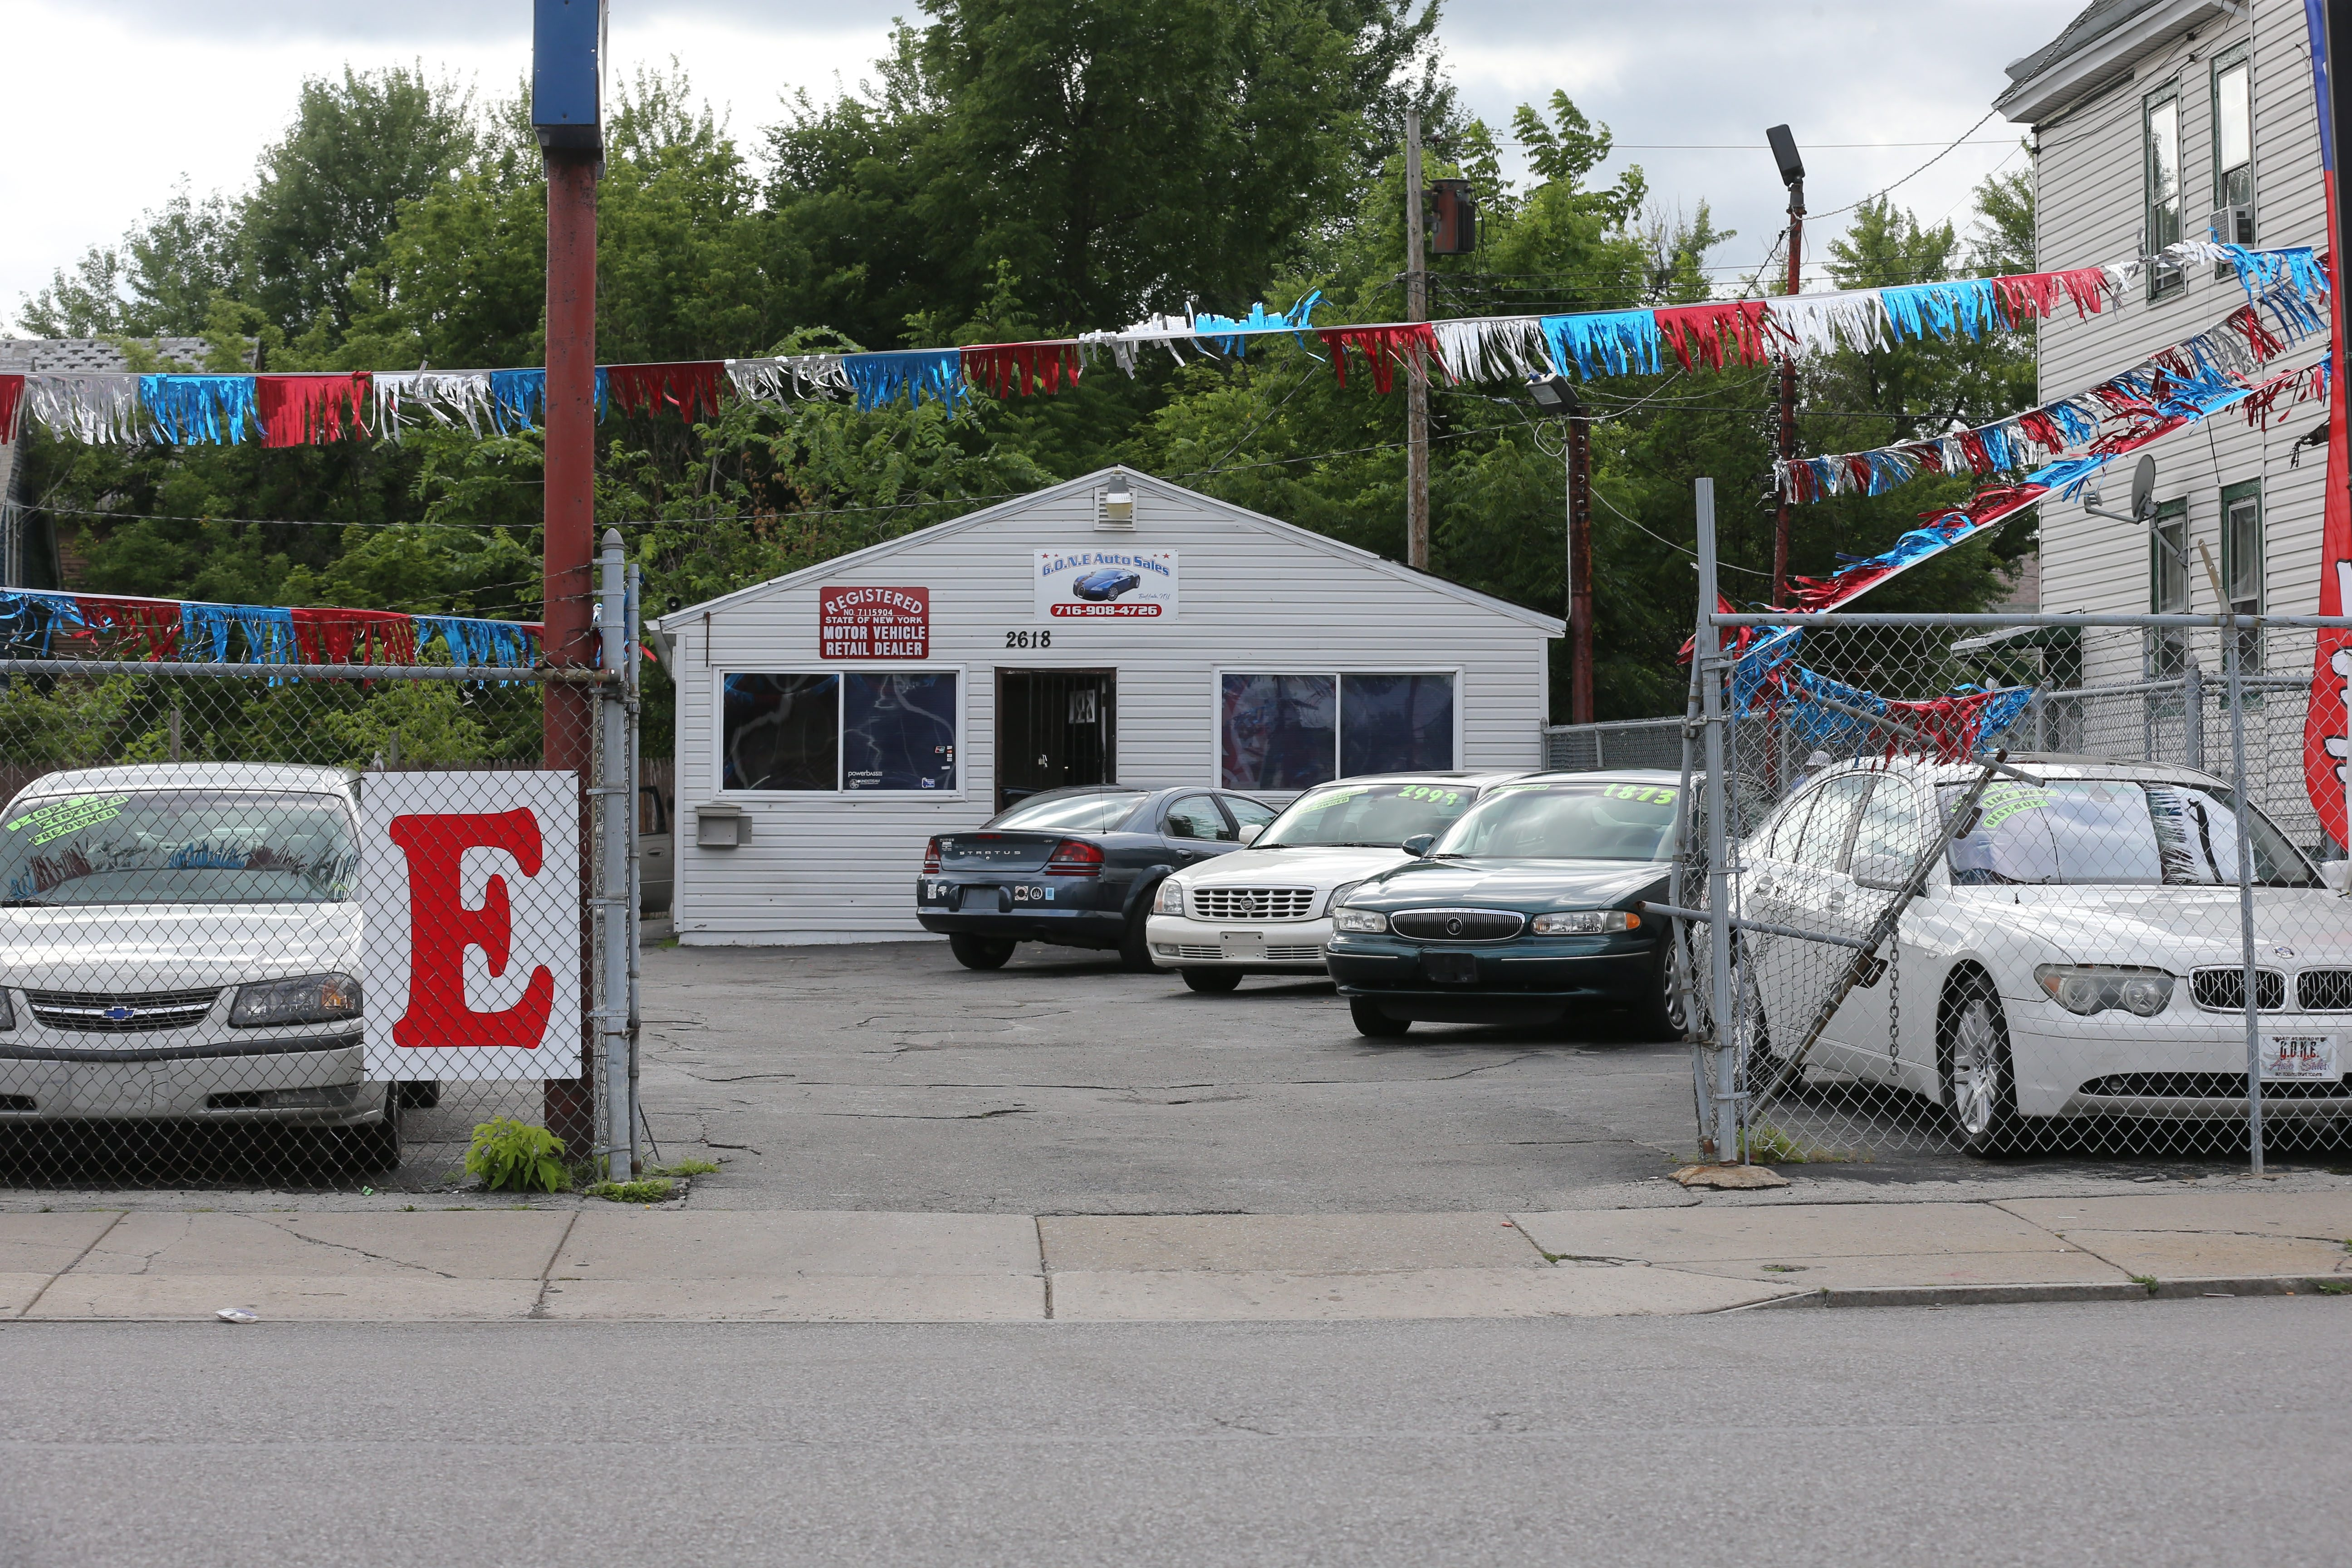 Gone Auto Sales, at 2618 Bailey Ave. in Buffalo, Wednesday, July 23, 2014. (Charles Lewis/Buffalo News)